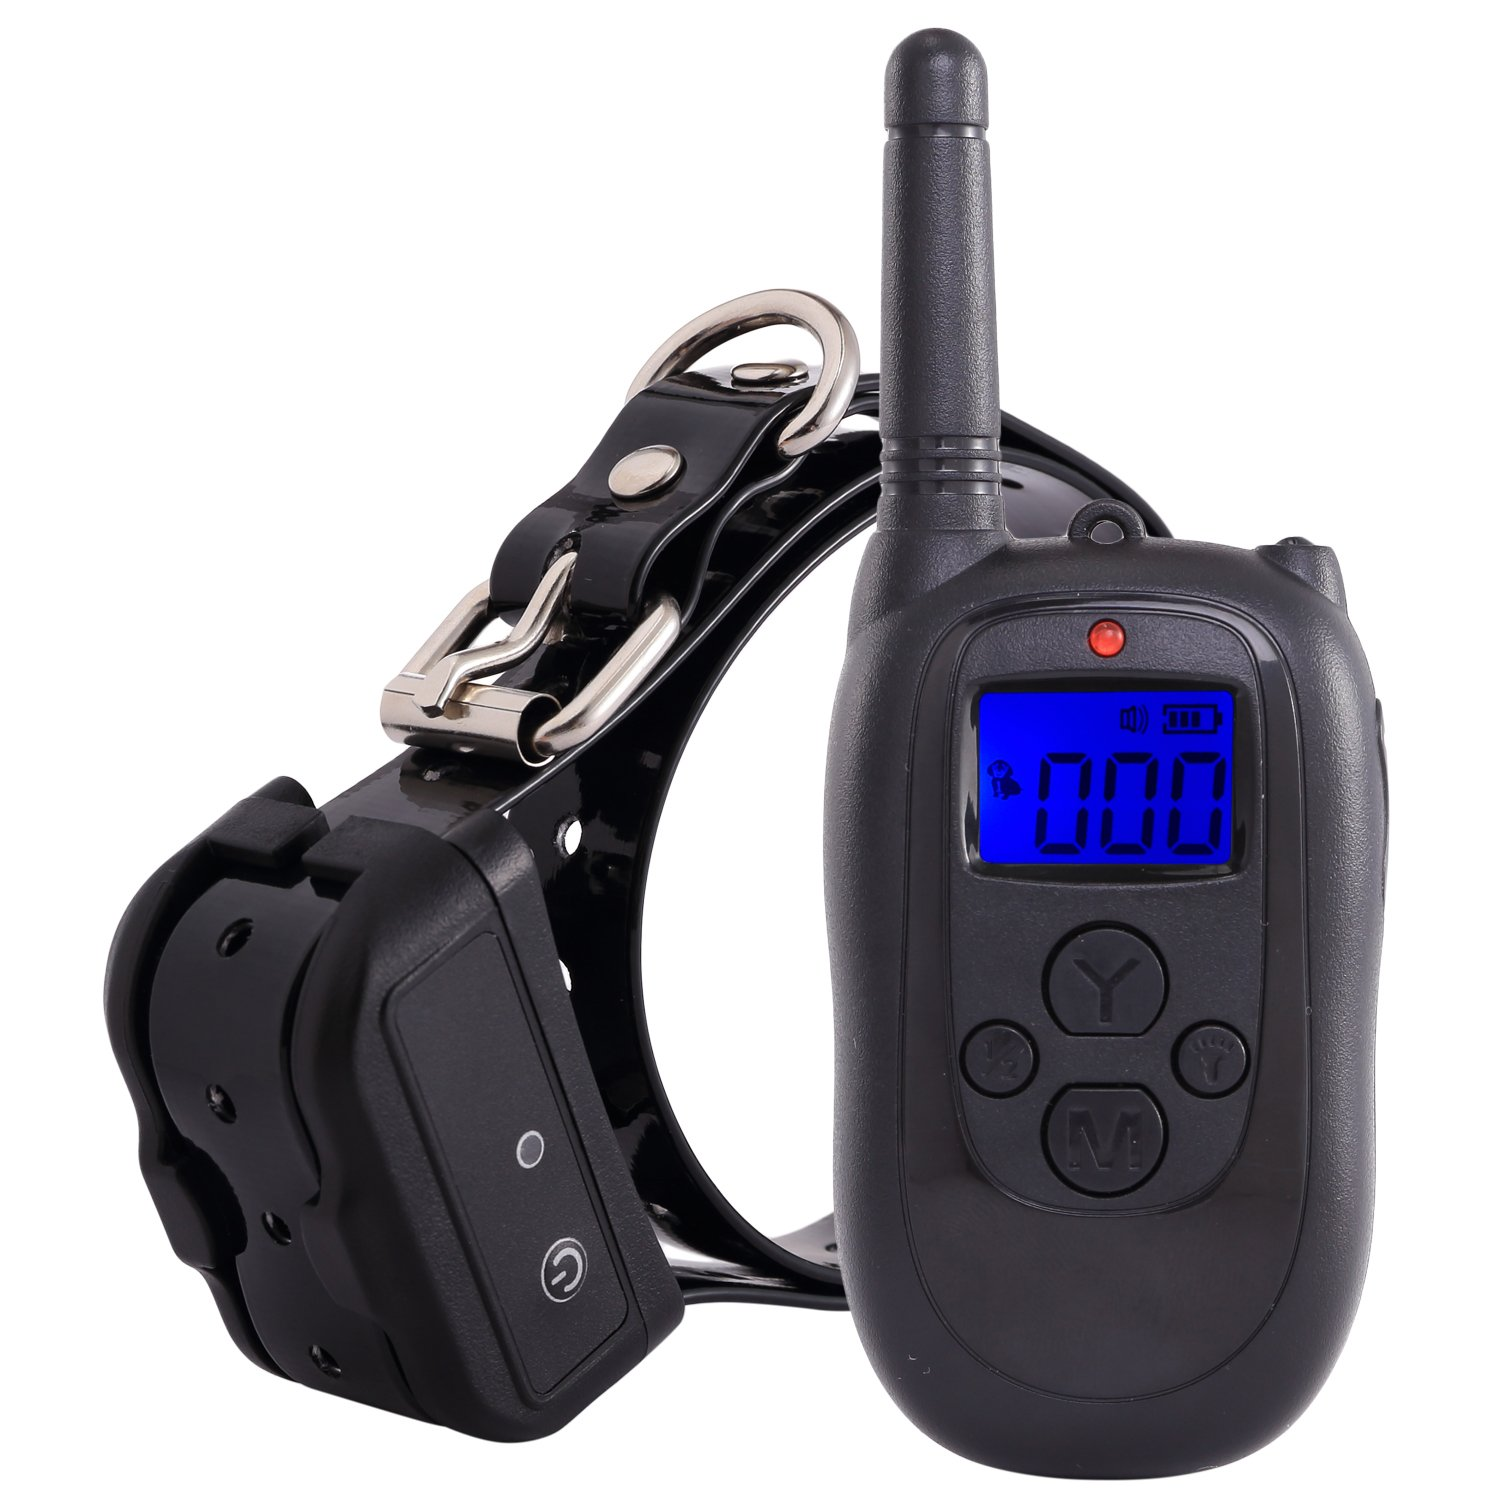 Petism Dog Shock Collar with Remote - Waterproof and Rechargeable Electronic